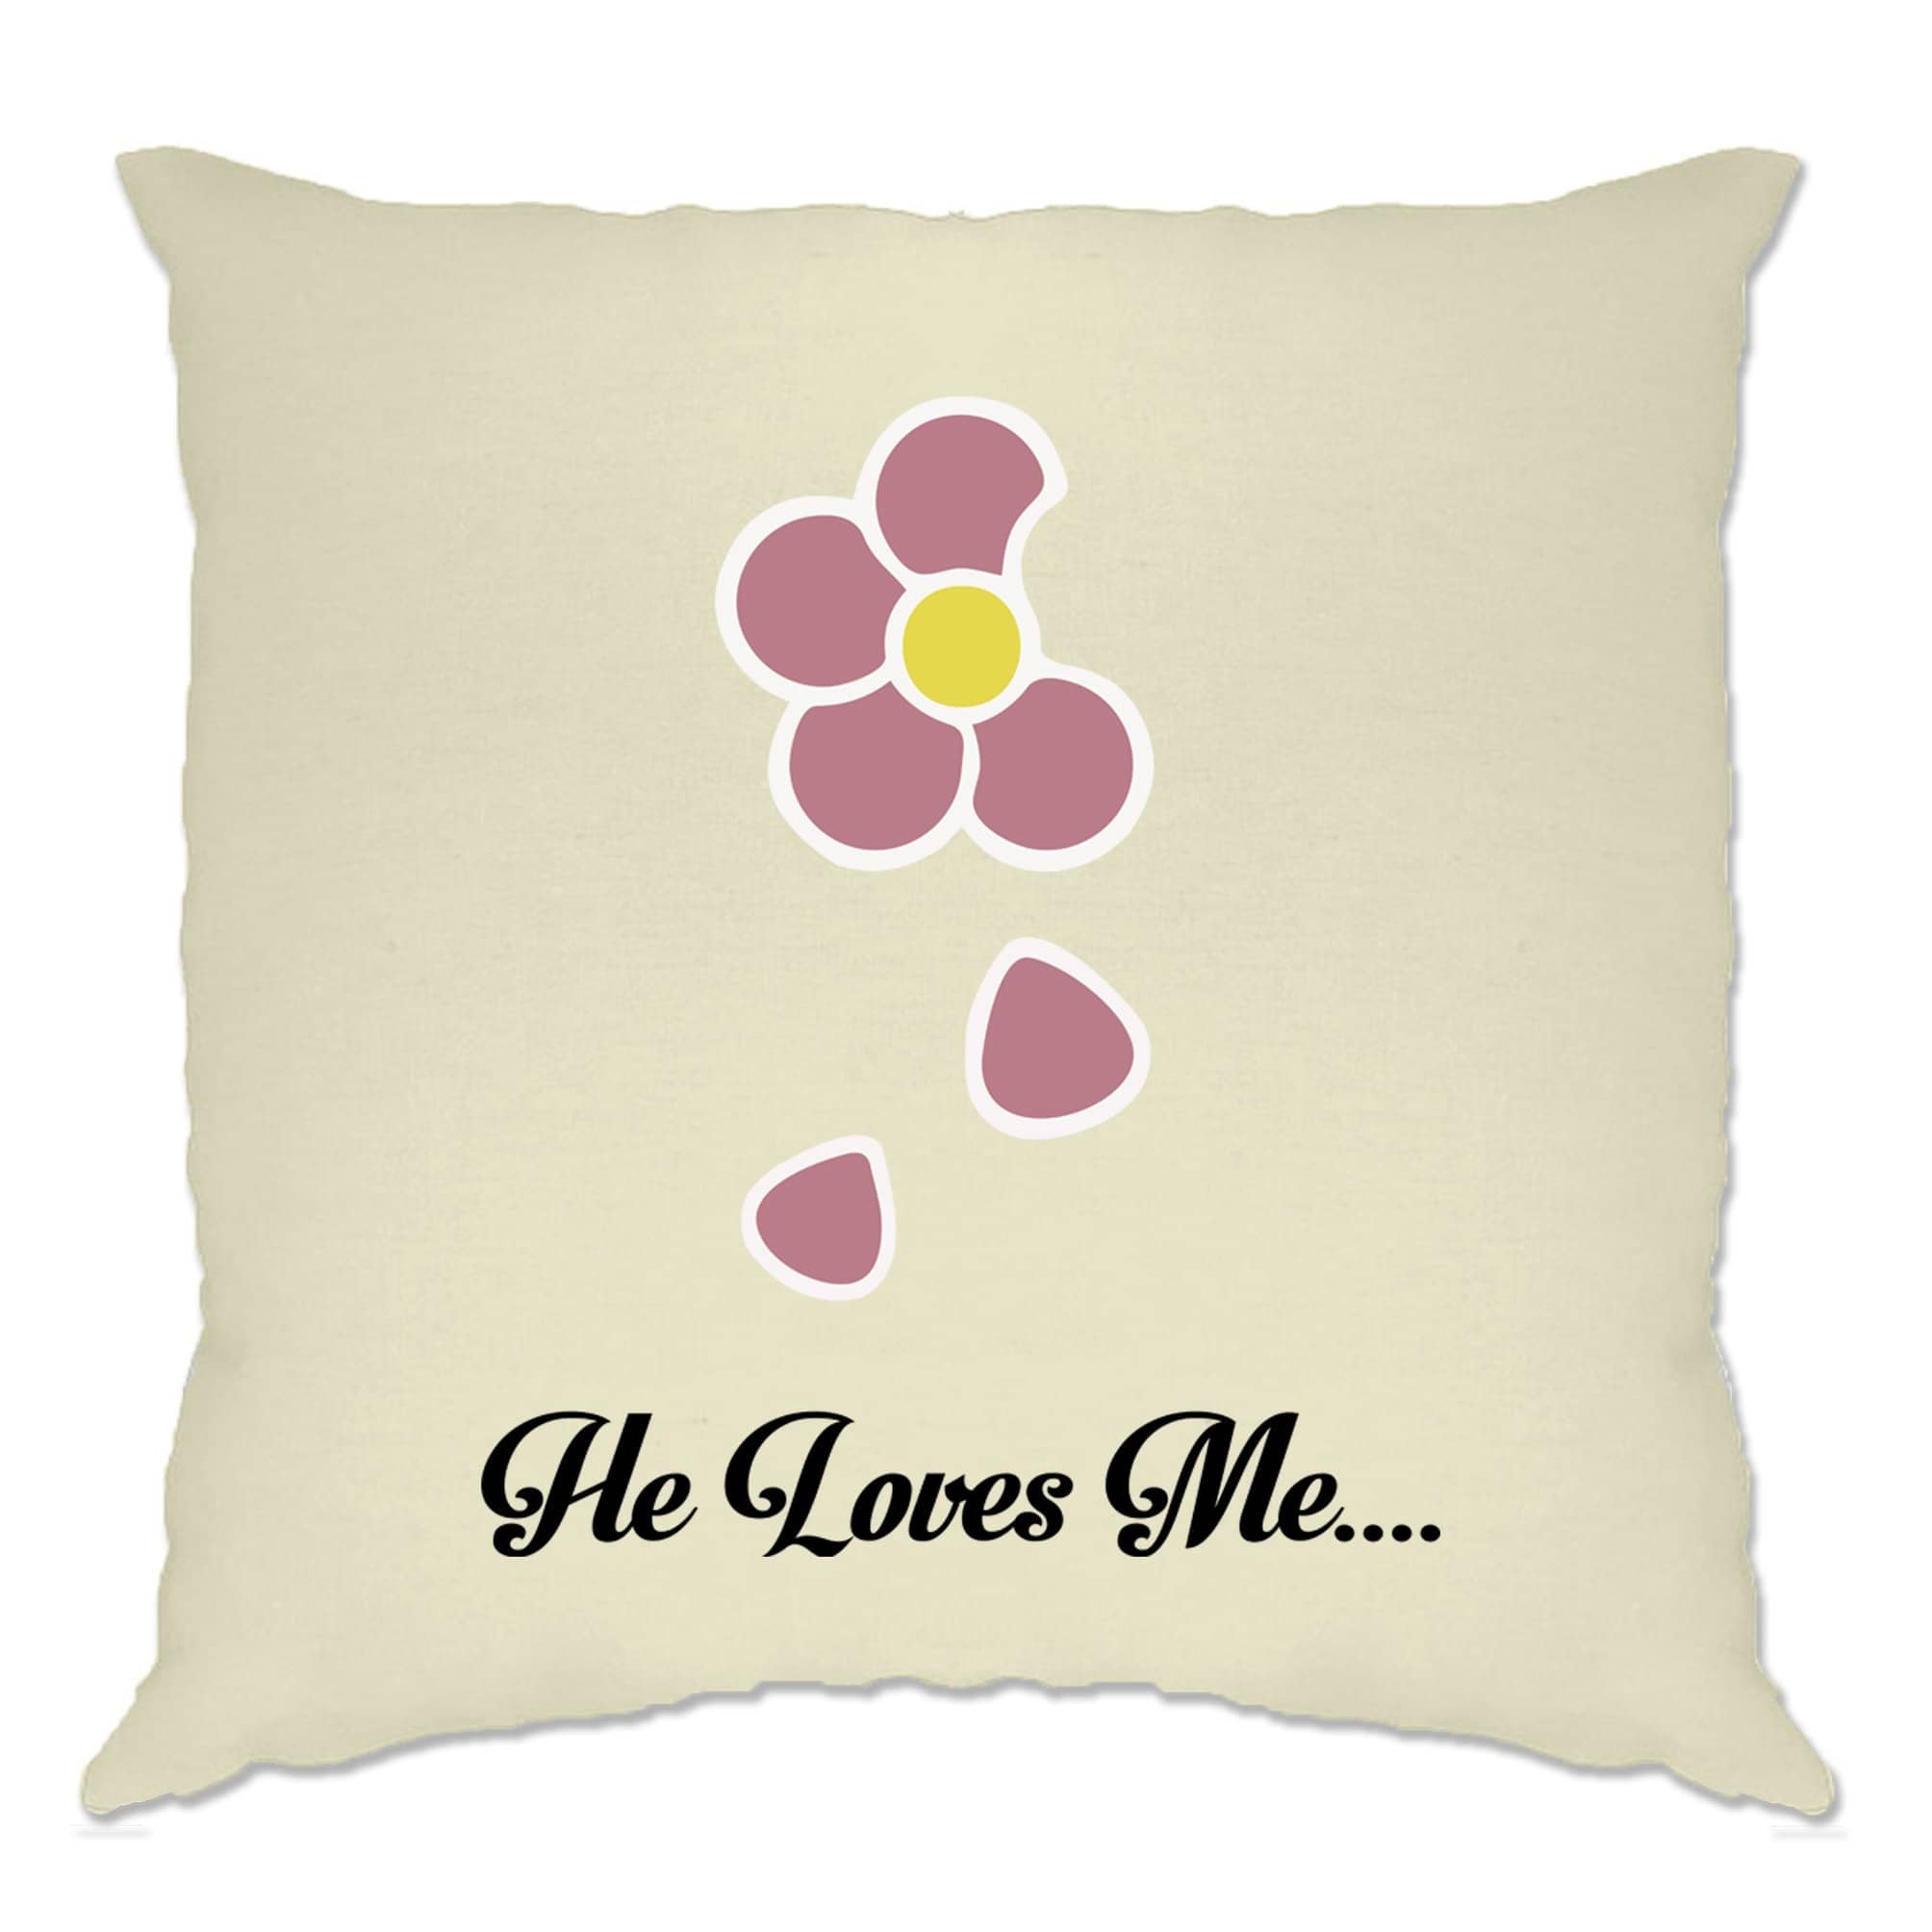 Cute Summer Cushion Cover He Loves Me... Flower Slogan